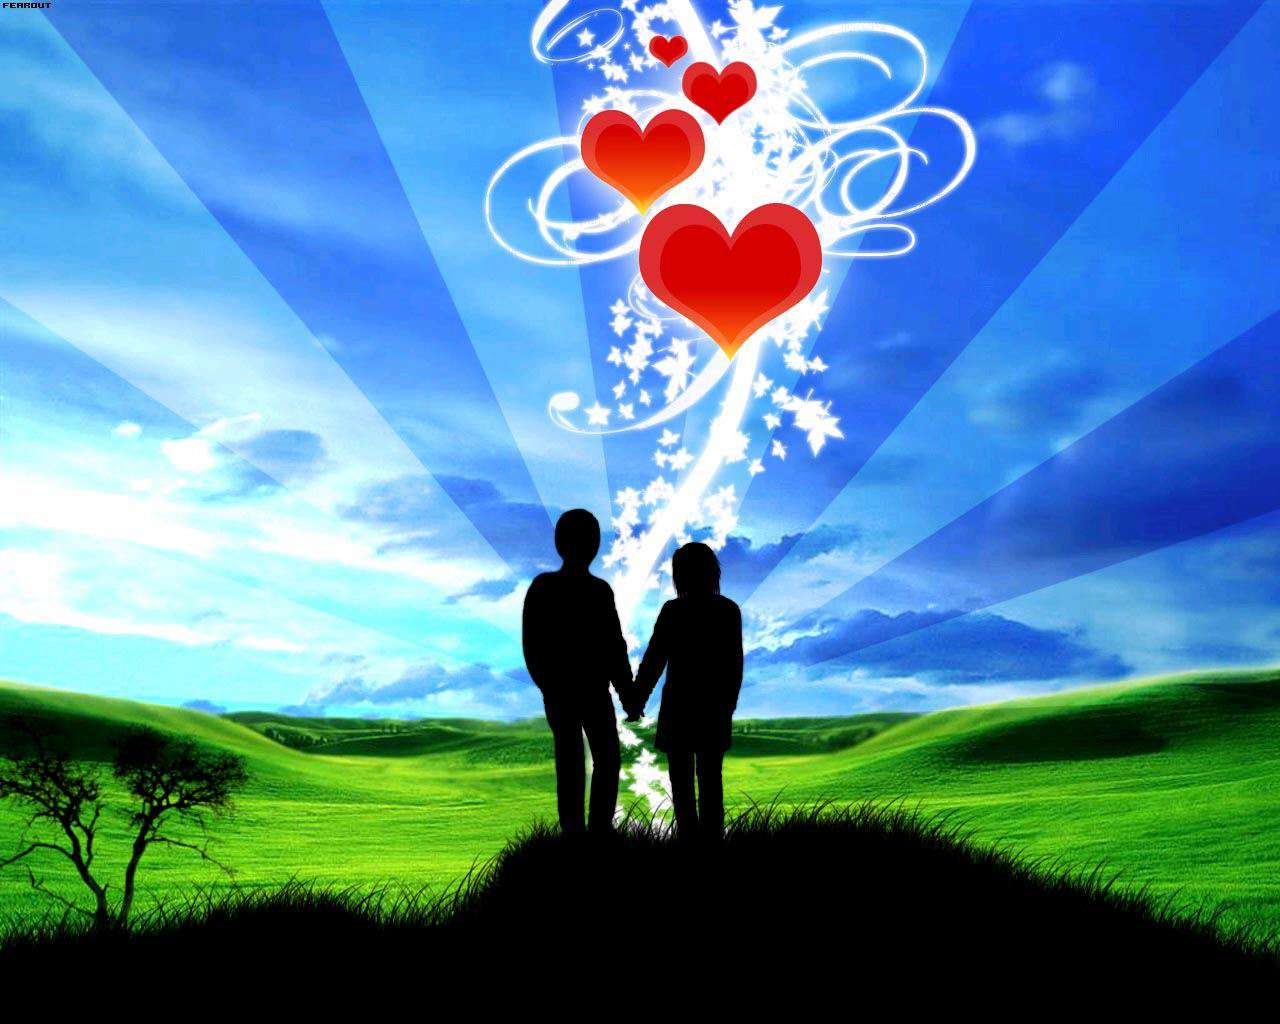 http://4.bp.blogspot.com/-qQa_JUL3WjI/TZFiA7HZPbI/AAAAAAAAAas/3O_8CNVwnCY/s1600/romantic-wallpaper-3d.jpg